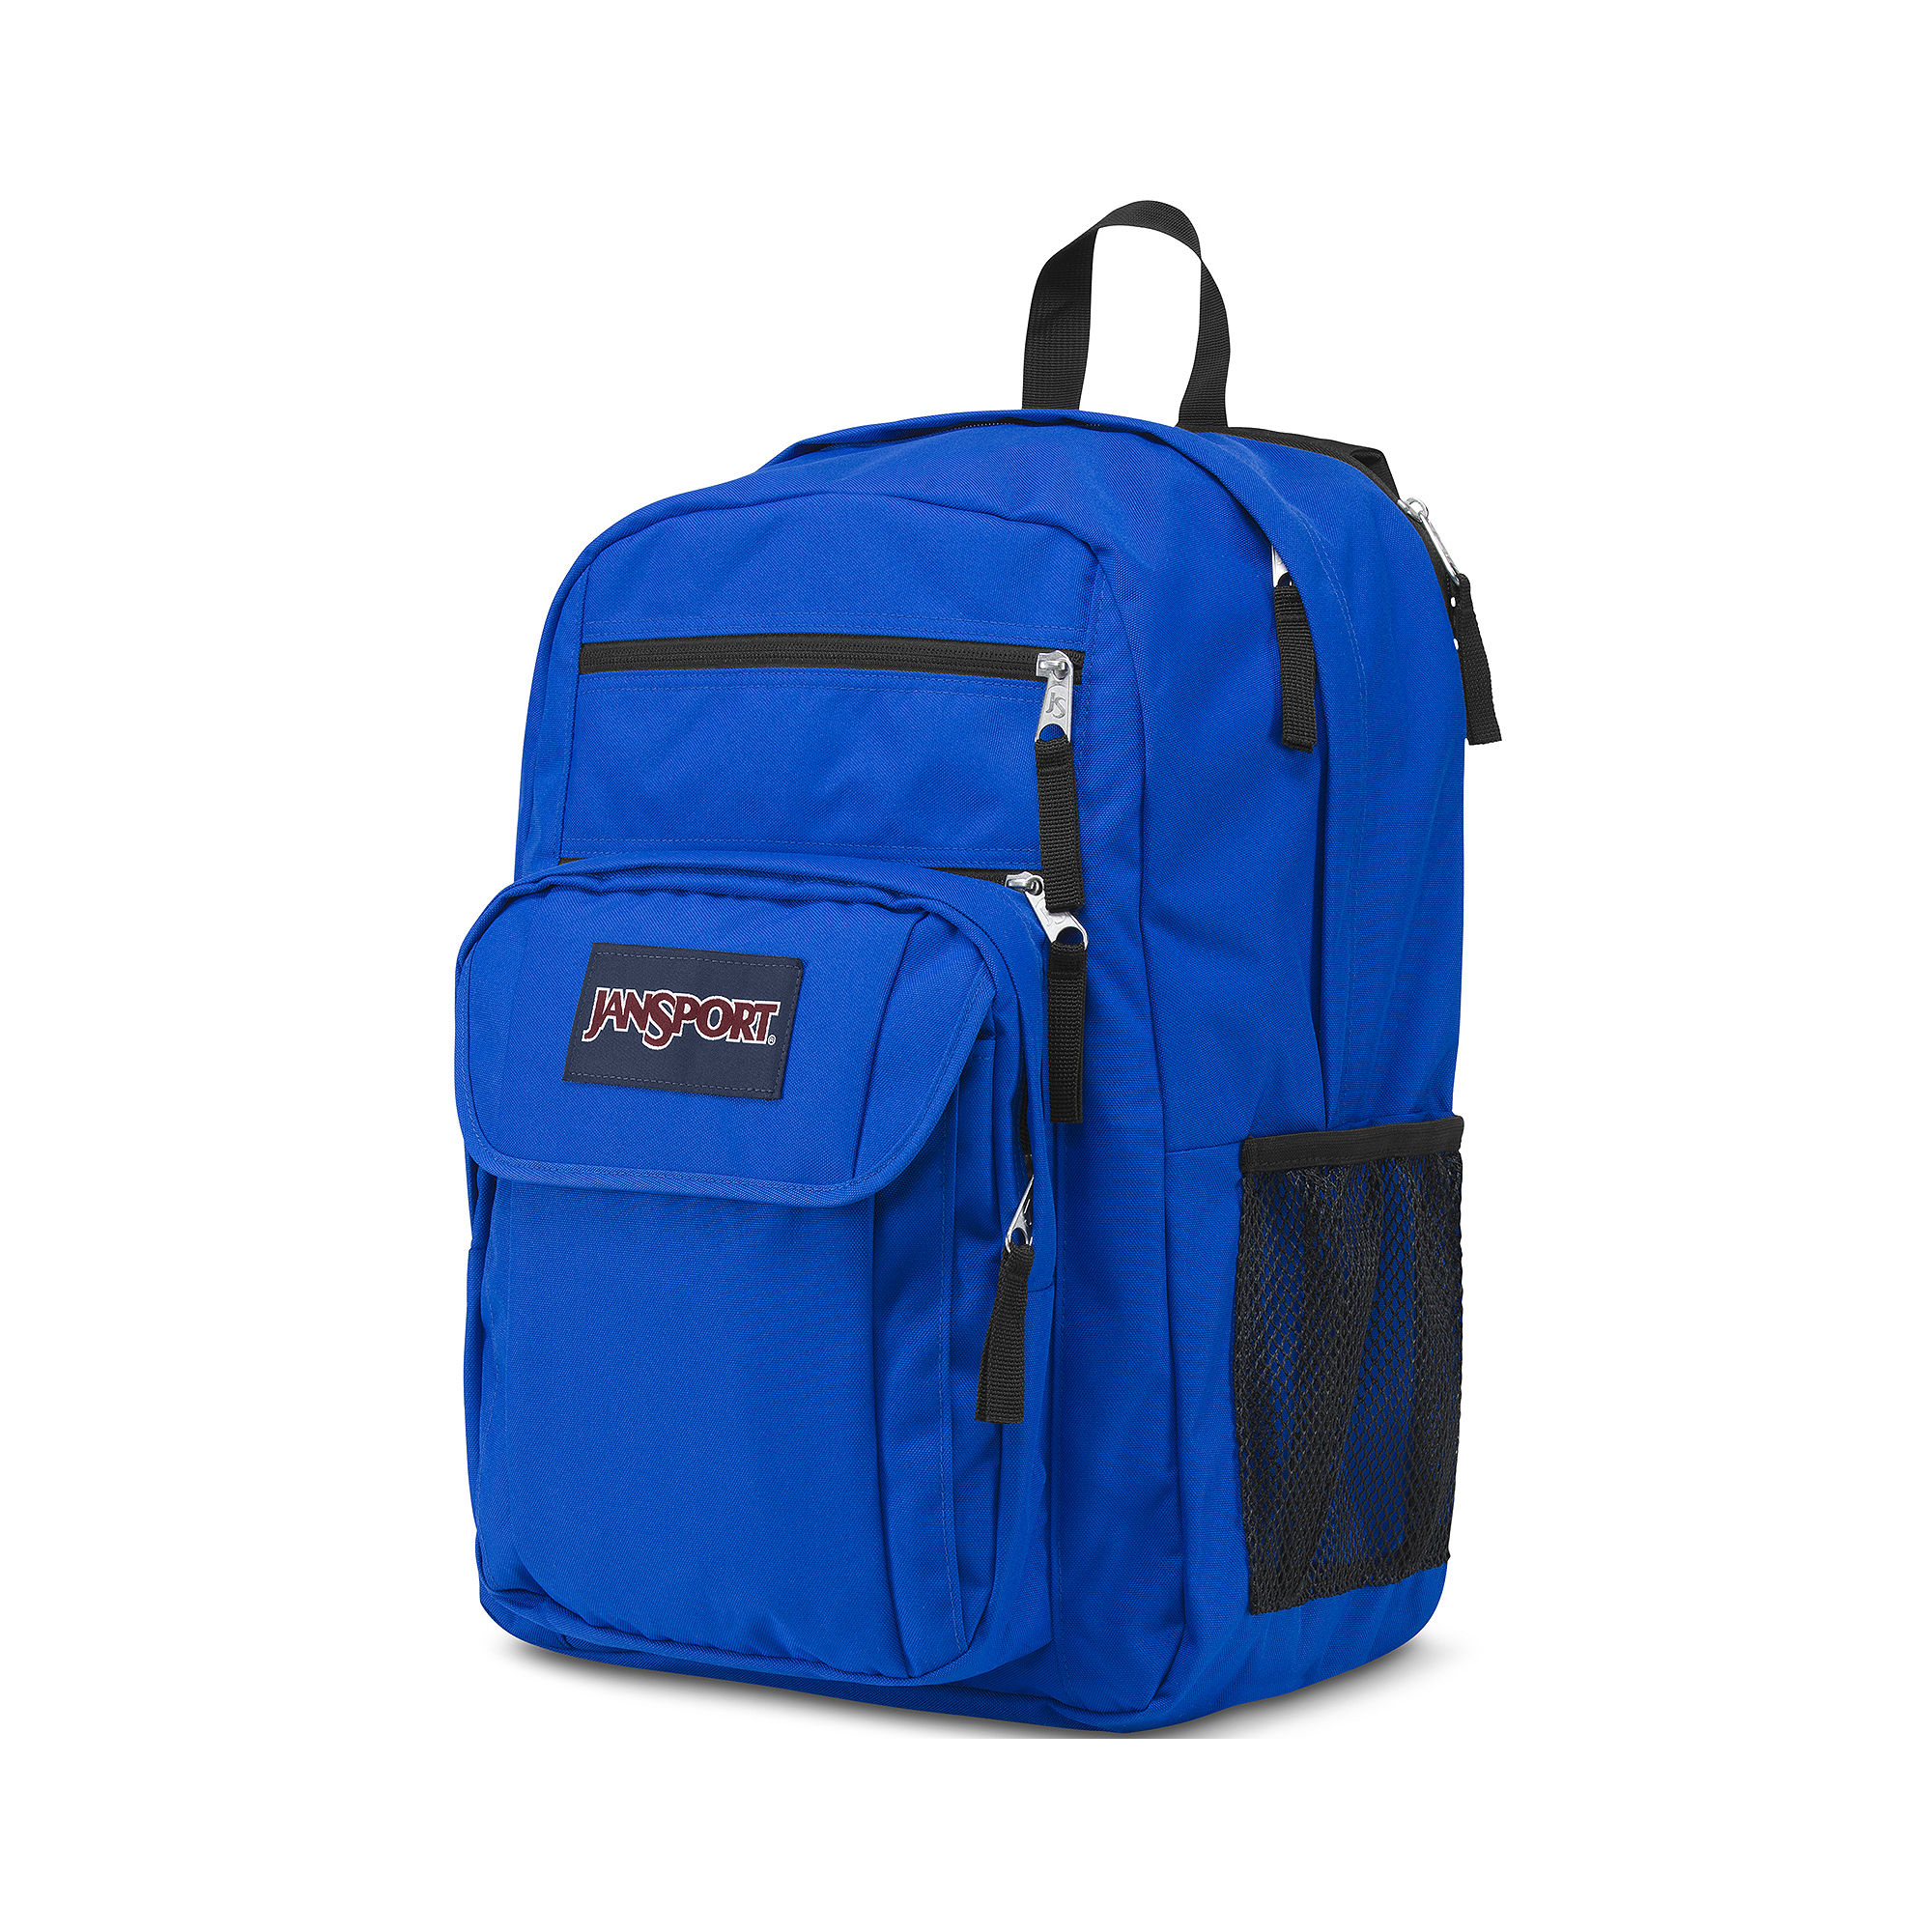 Big 5 Jansport Backpacks 85EZ8hCd